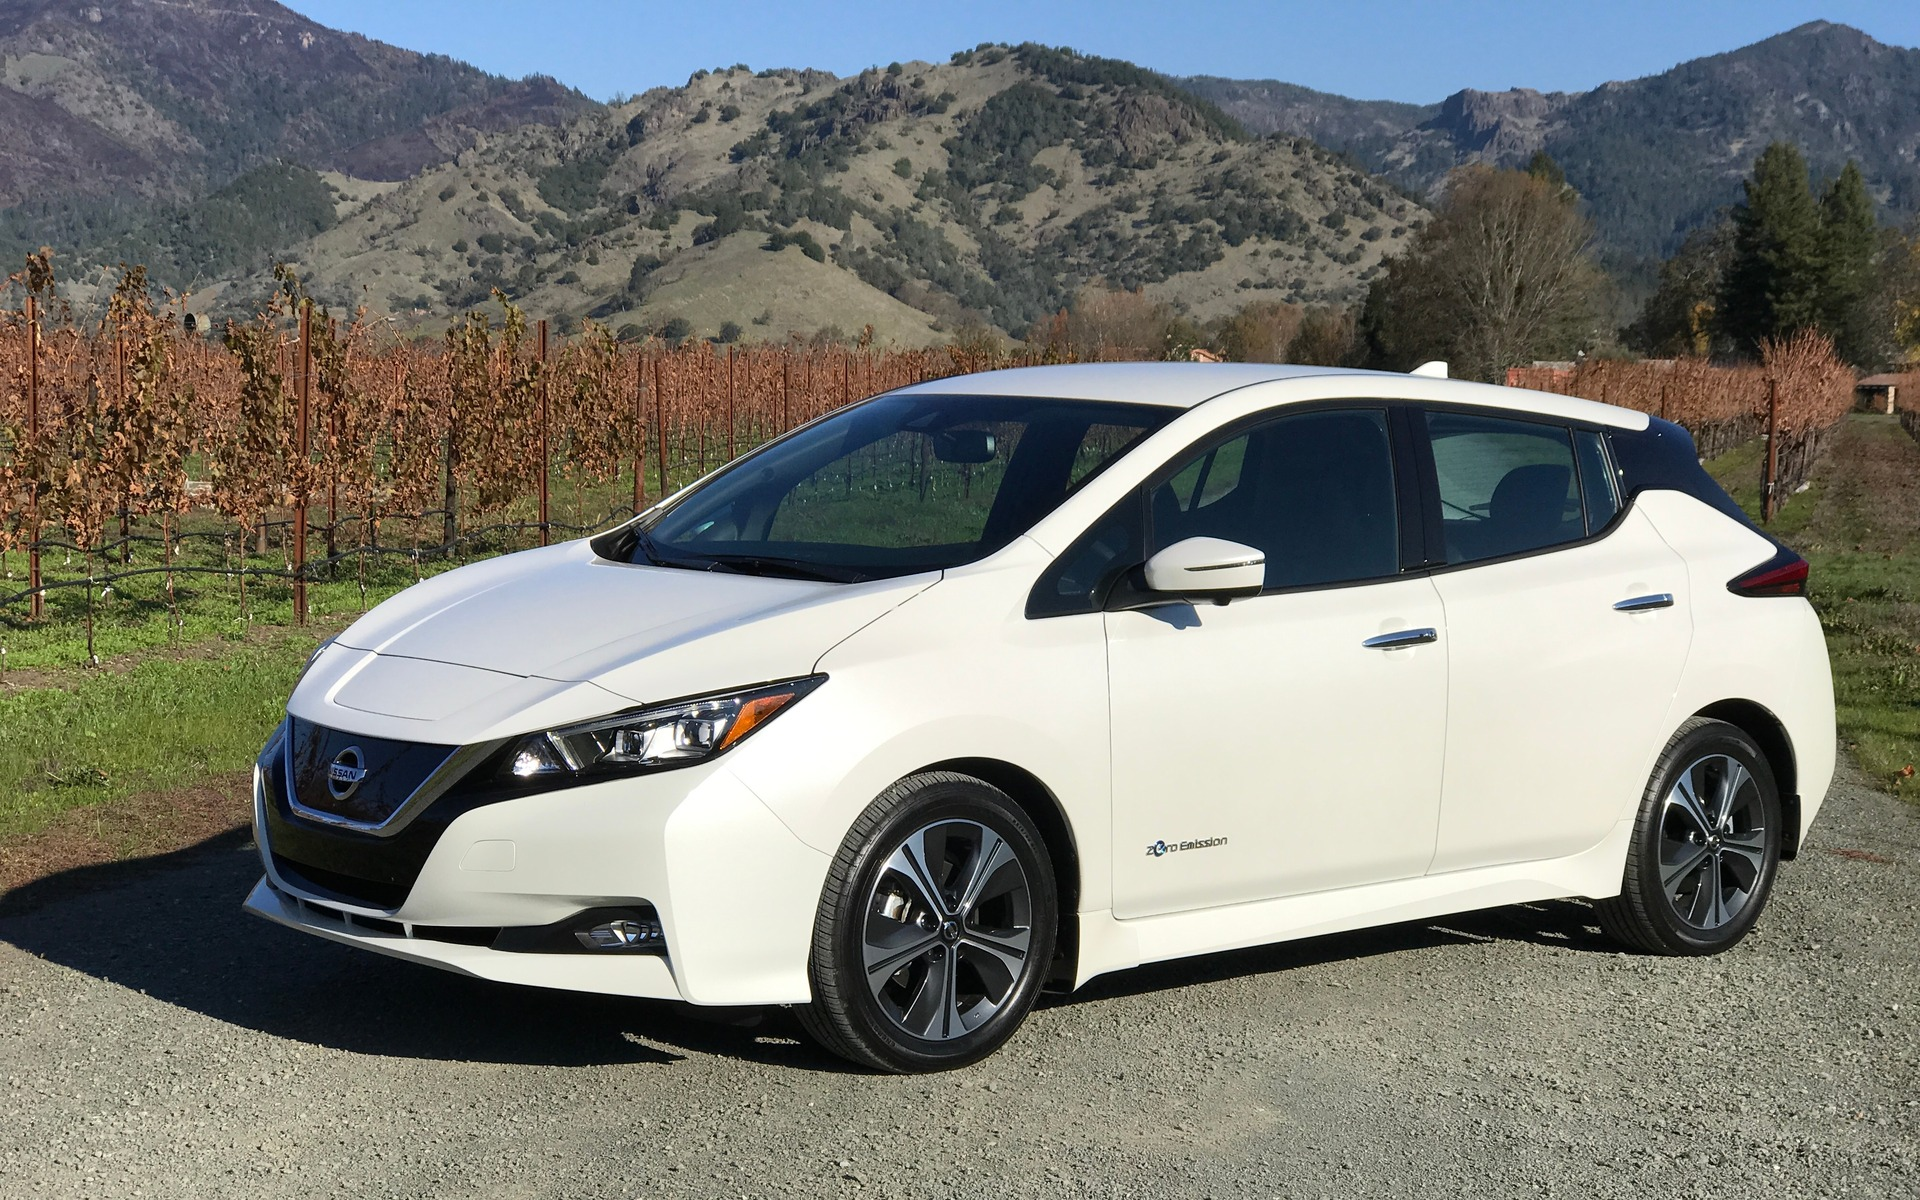 2018 Nissan LEAF: Balancing Price And Range